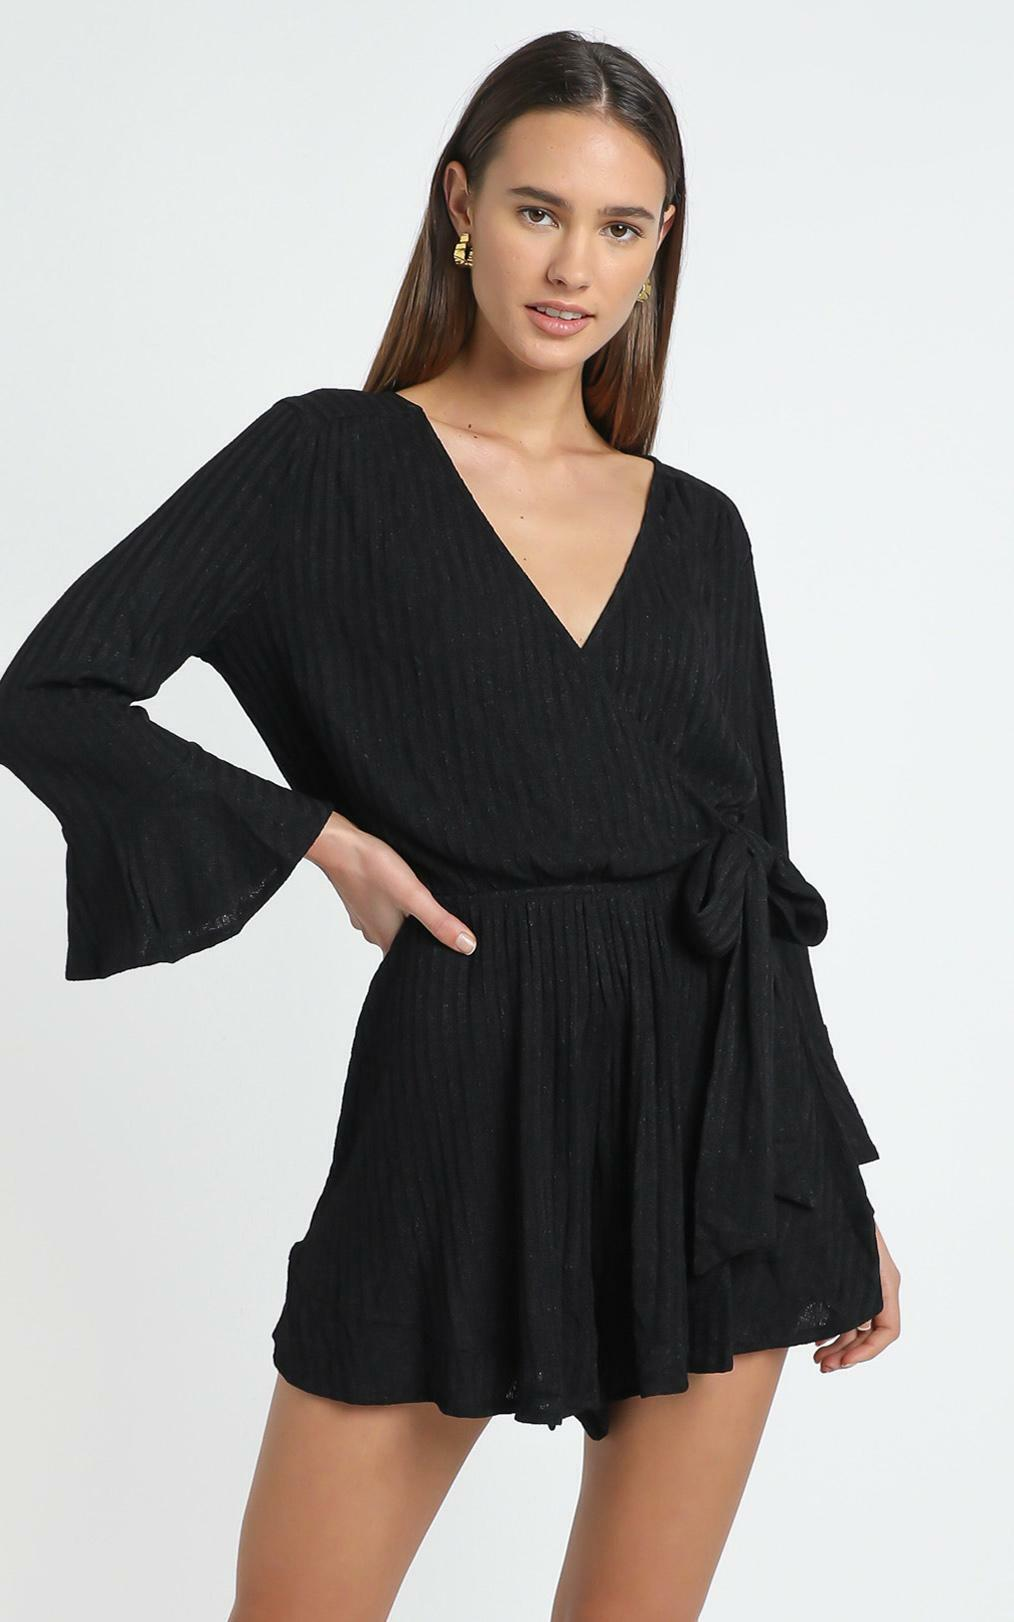 New and Fresh Playsuit in black rib - 6 (XS), Black, hi-res image number null